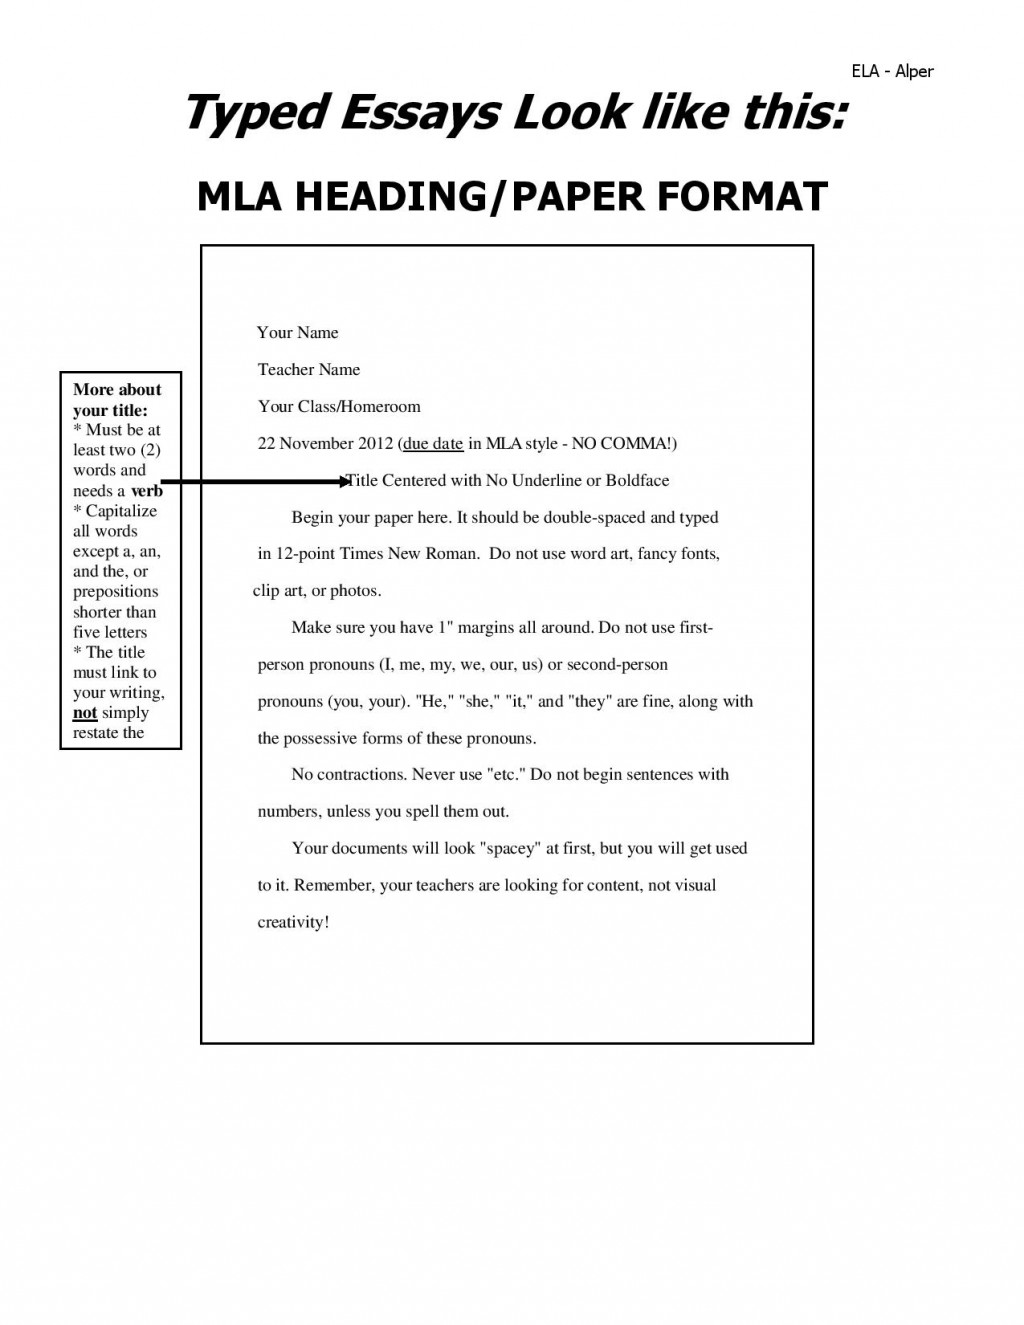 011 Word Essay Outline Outine Cover Letter One Example  Typed Essays Look Like This Pag Topic Thousand Oxford Examples Spm Describe Yourself In Words To Not Unique Use Persuasive An ExpositoryLarge